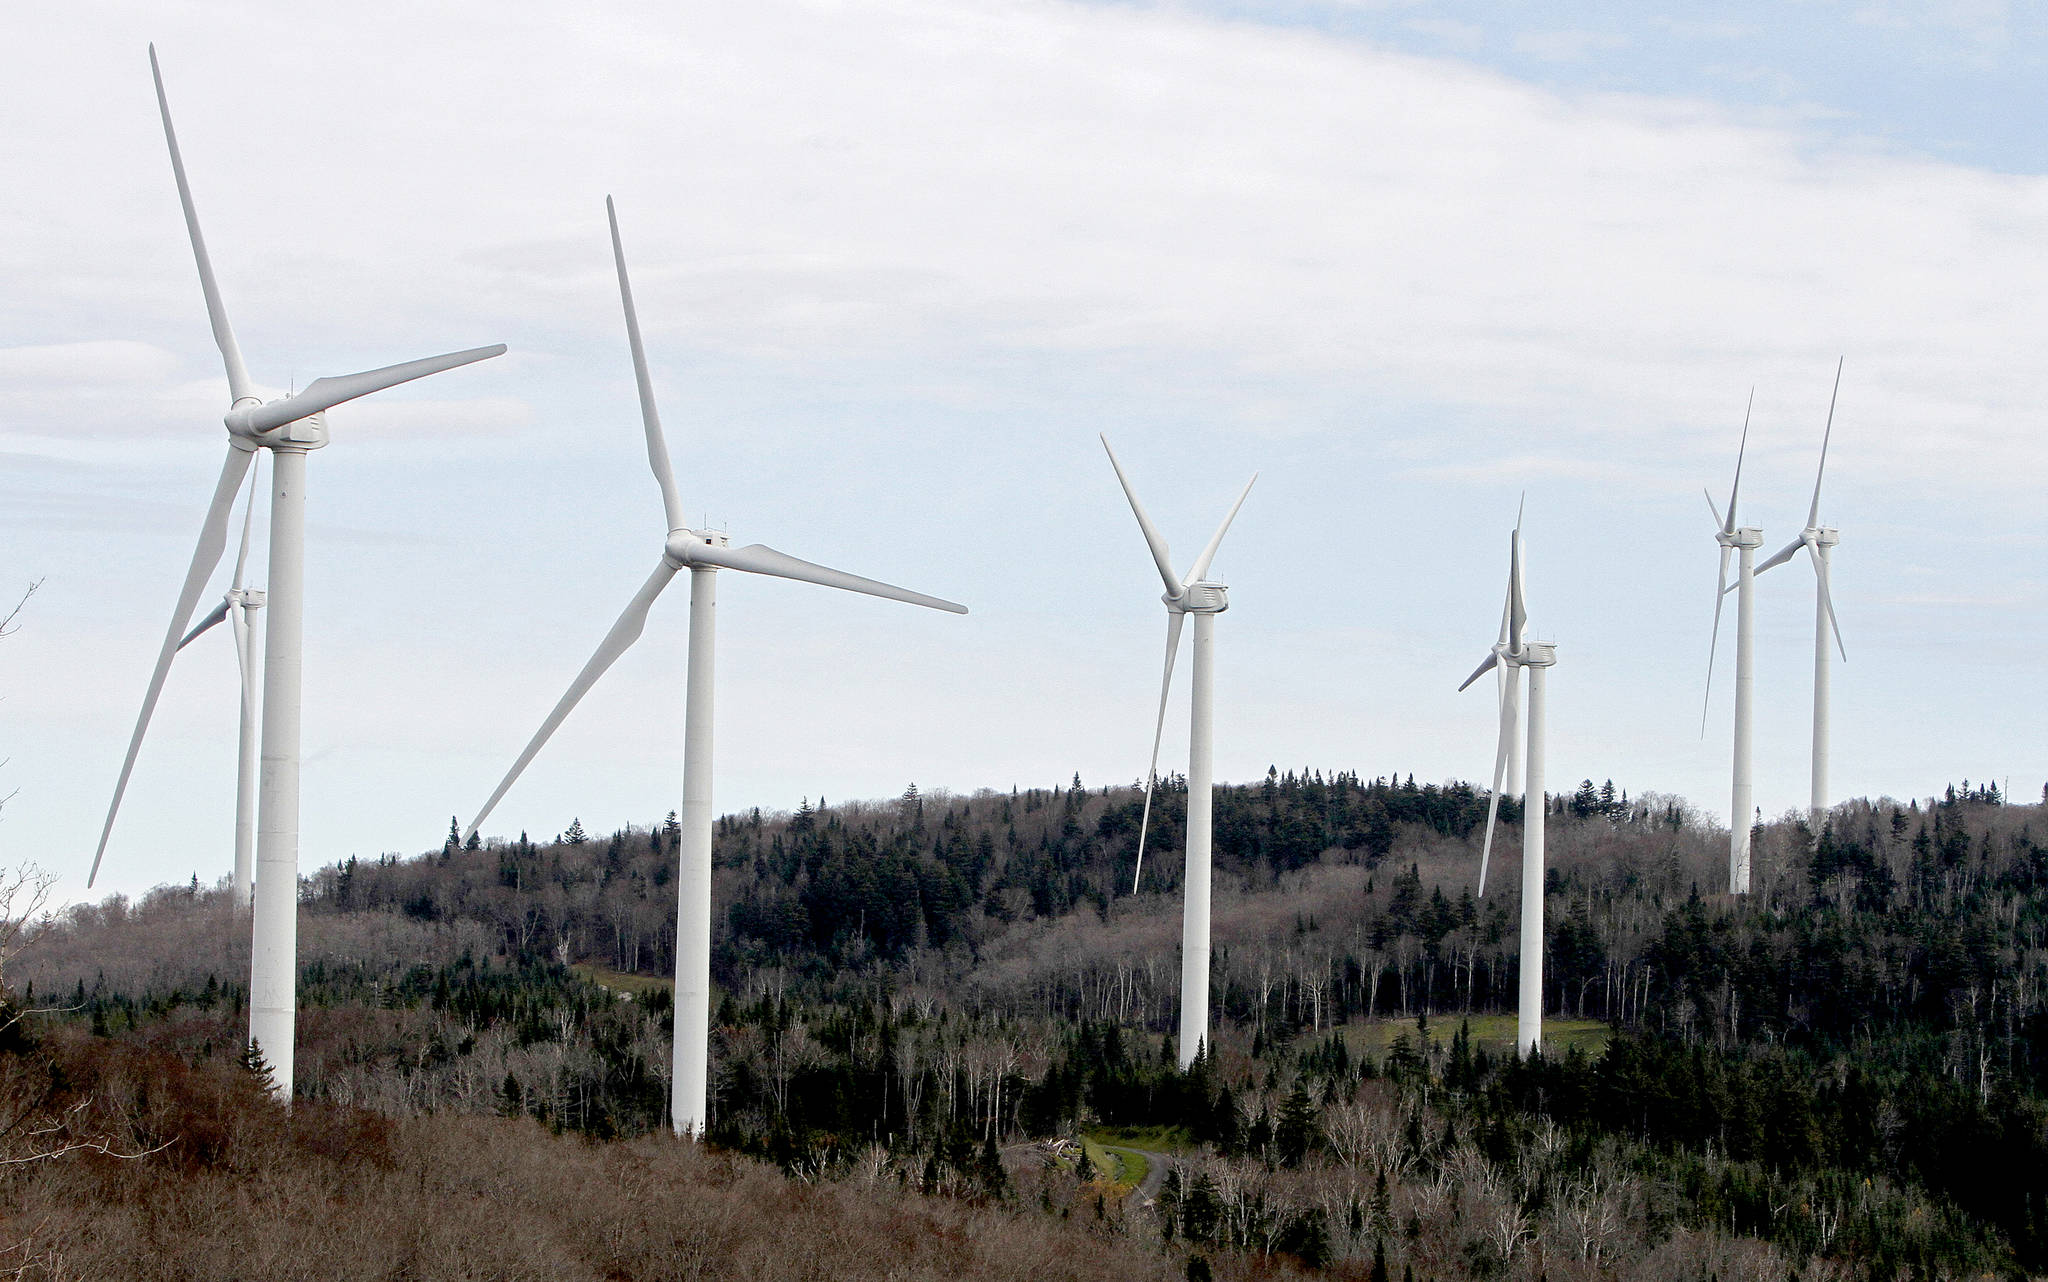 FILE- In this Oct. 26, 2011 file photo, wind turbines line the hillside at First Wind's project in Sheffield, Vt. Government officials in Vermont, Canada and Australia have dismissed concerns about the health effects of noise from wind power turbines, but don't tell that to people living near them. Now a Vermont home abandoned by a family who said they were made ill by nearby turbines will be used for sound-monitoring research. (AP Photo/Toby Talbot, File)